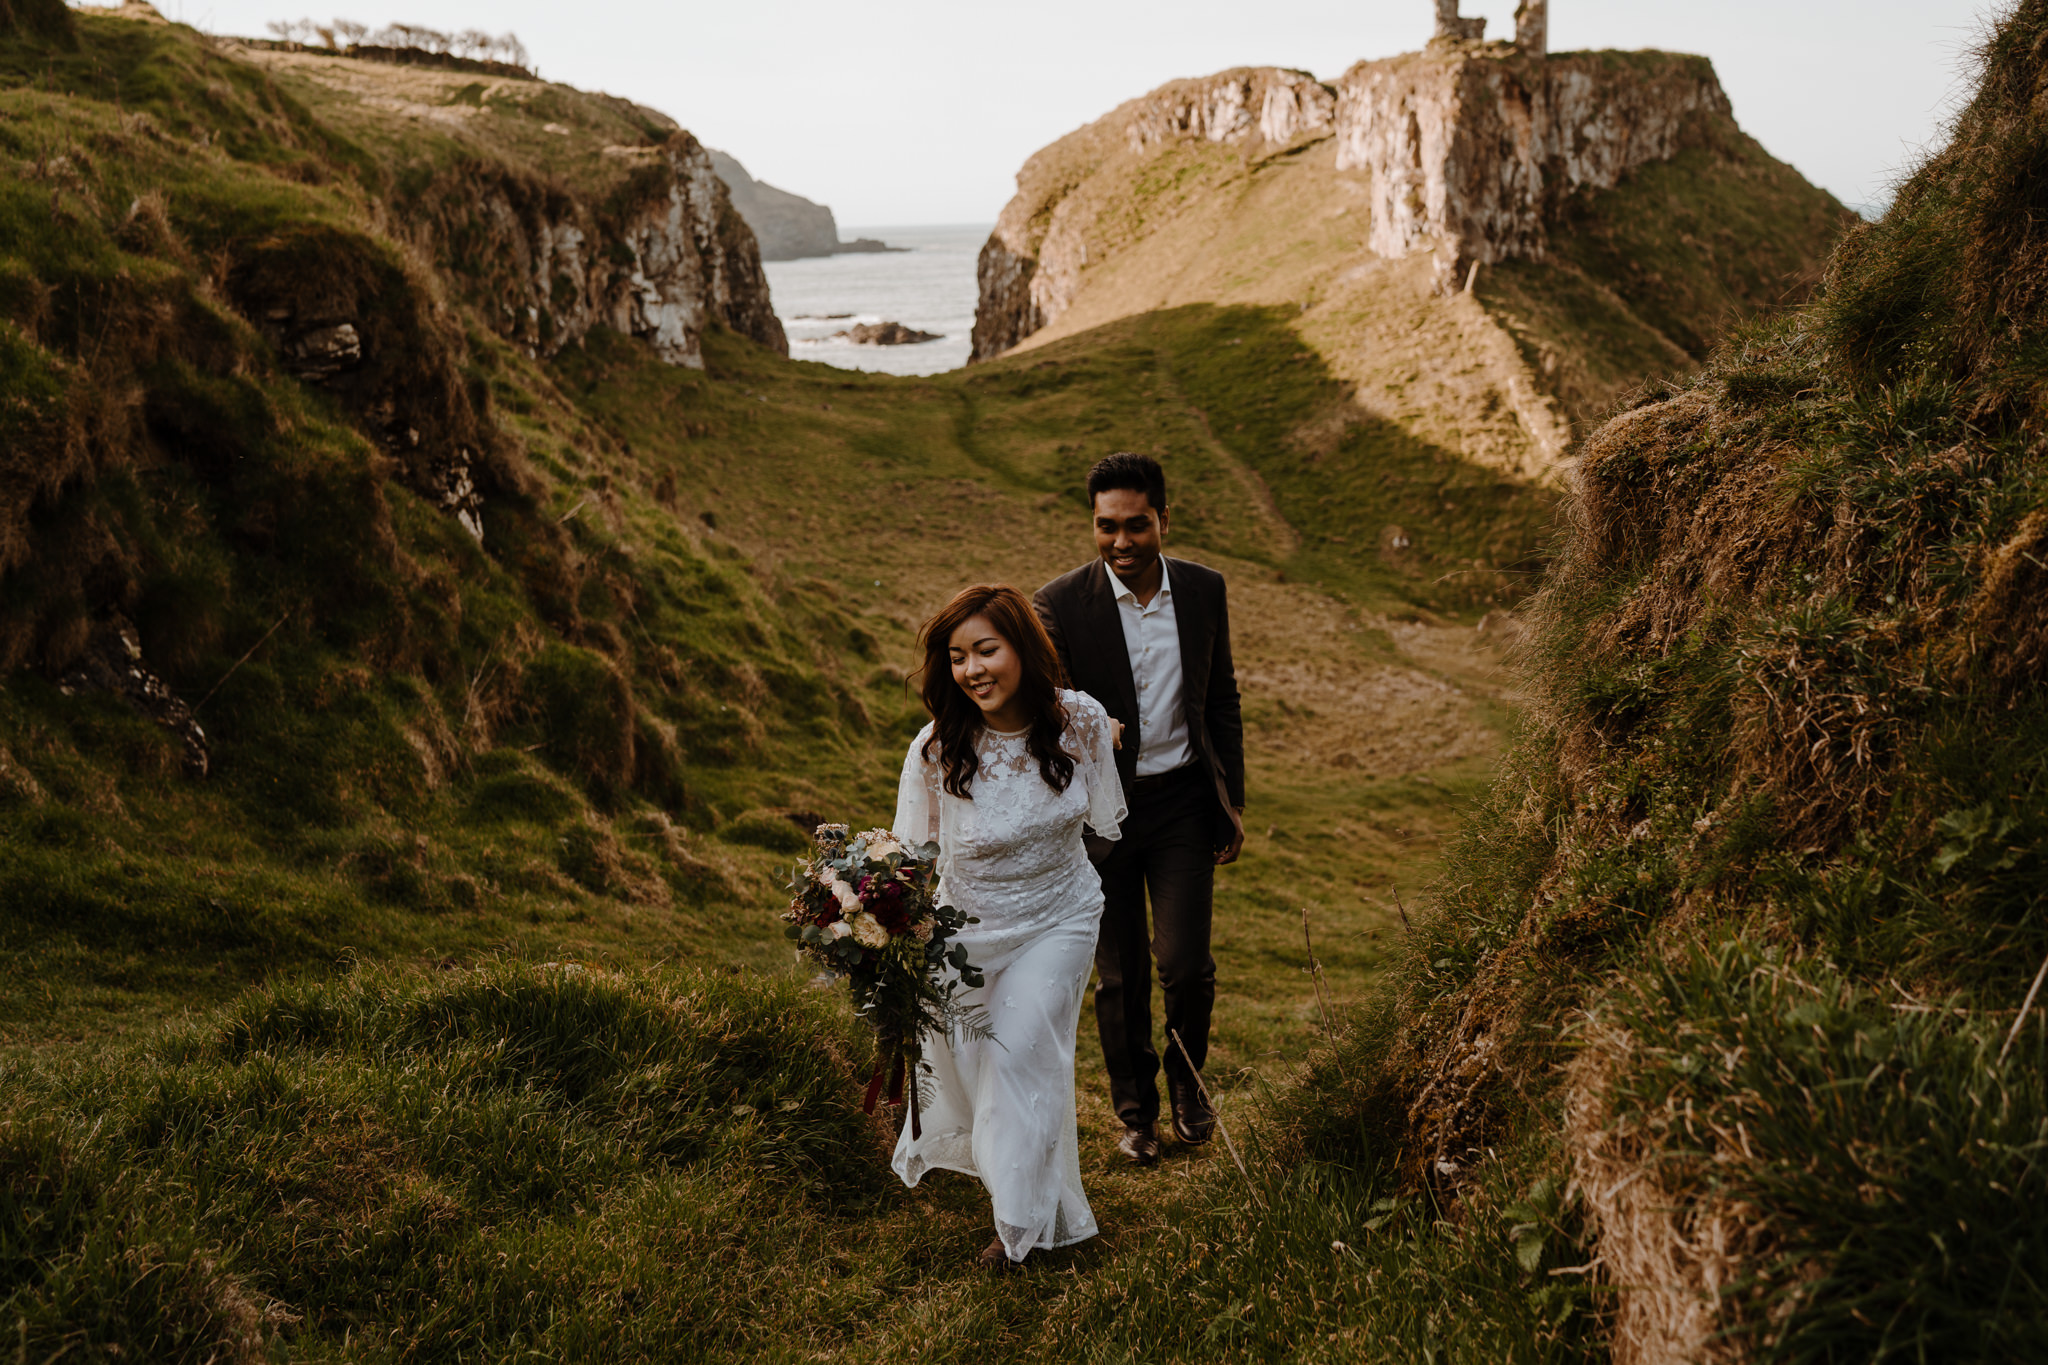 epic locations to elope in Ireland Dunseverick castle